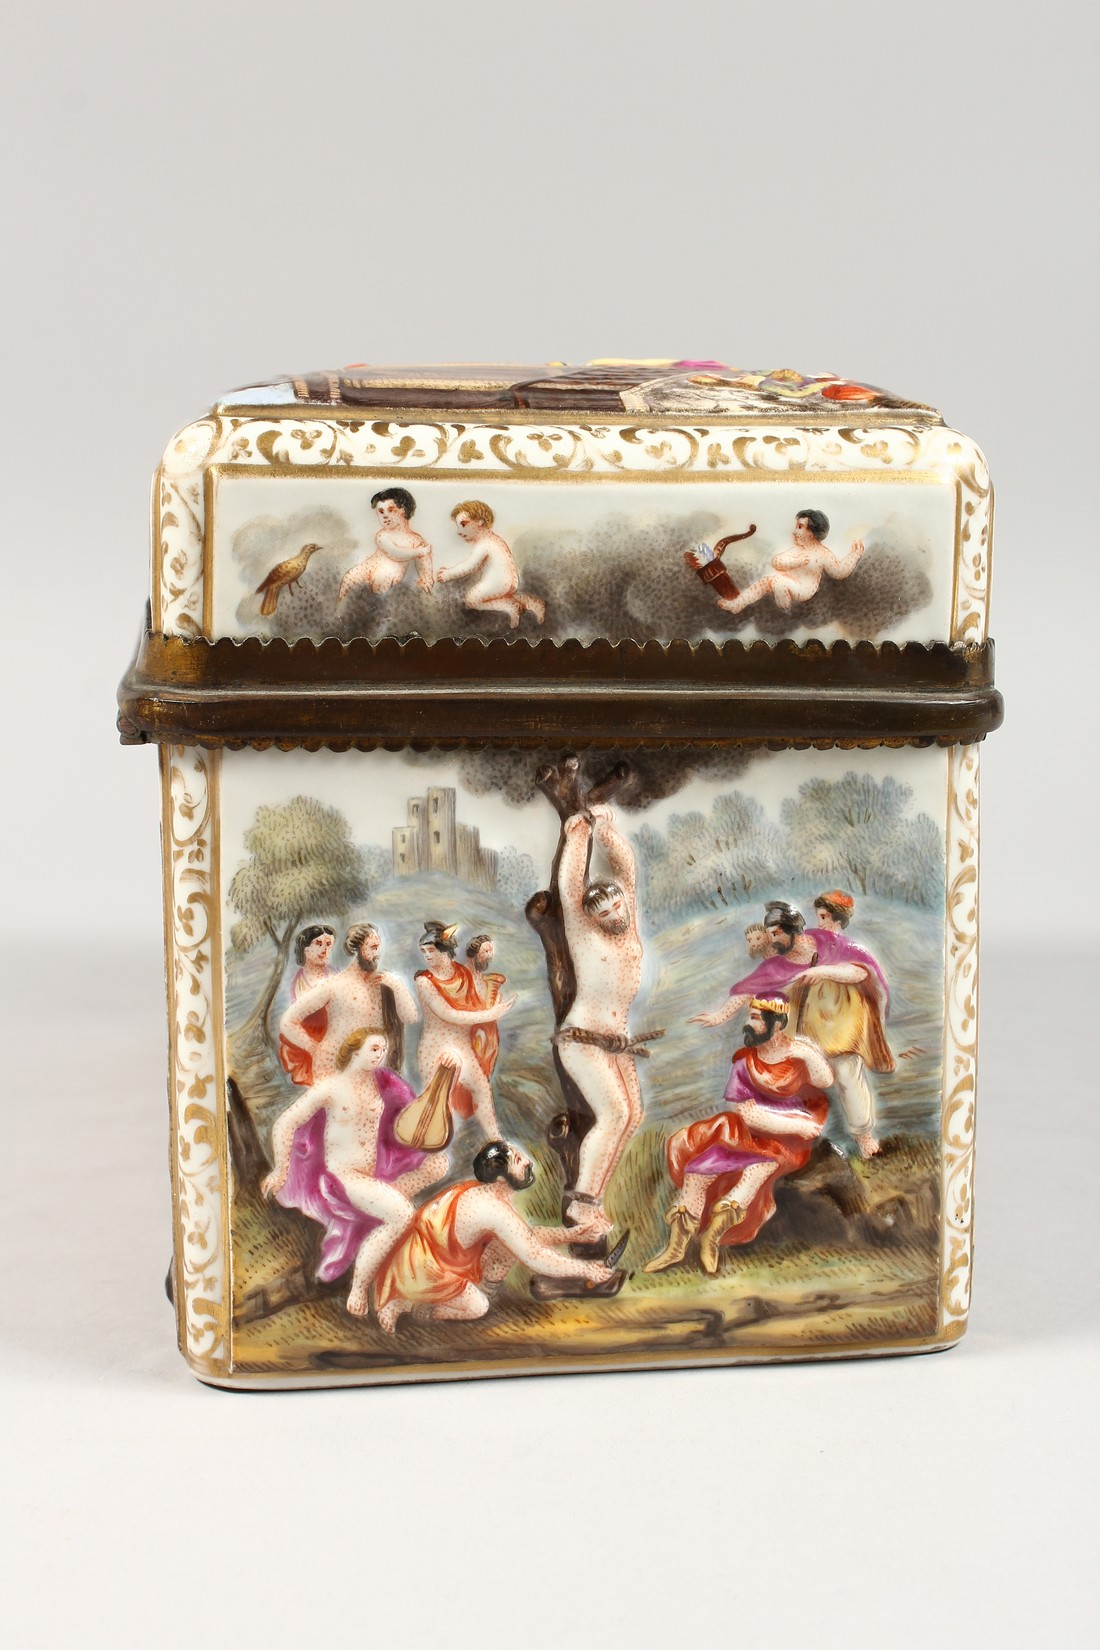 A GOOD CAPODIMONTE CASKET with classical figures in relief 9.5 ins wide. - Image 3 of 8